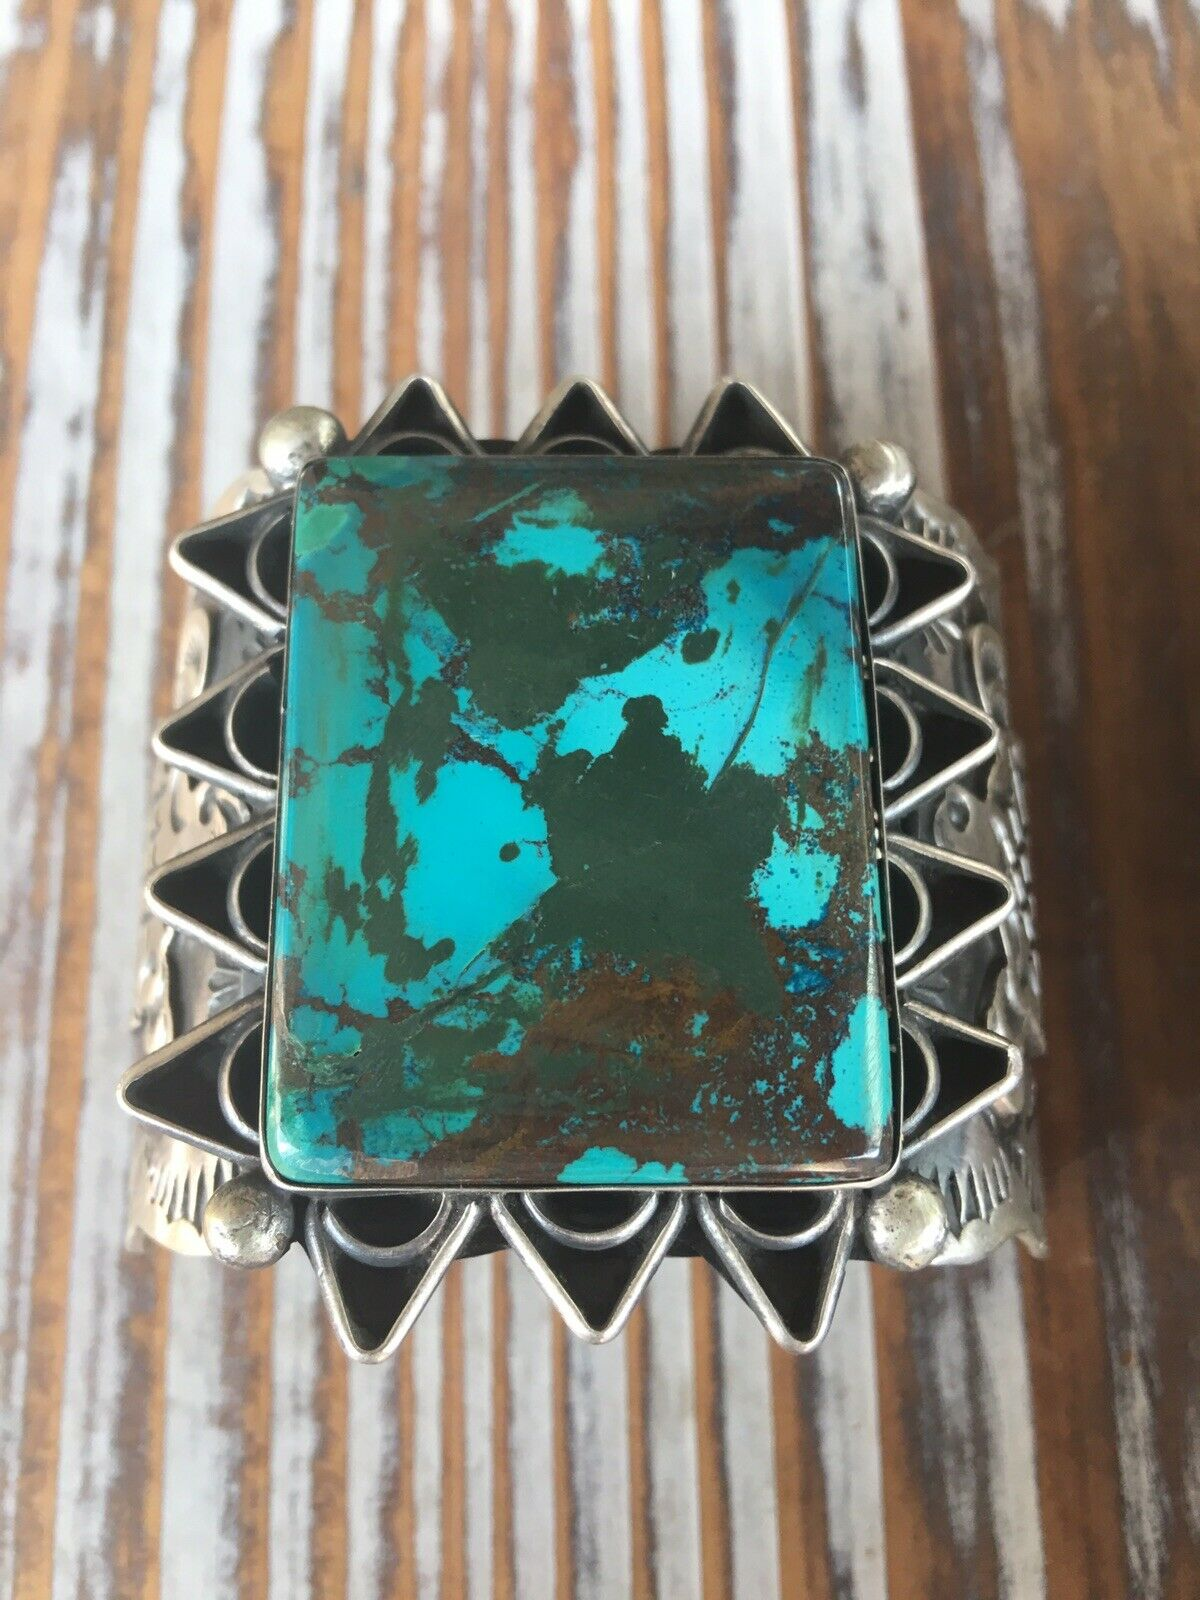 Chimney Butte Navajo Turquoise And Sterling Silver Turtle Cuff Bracelet Signed